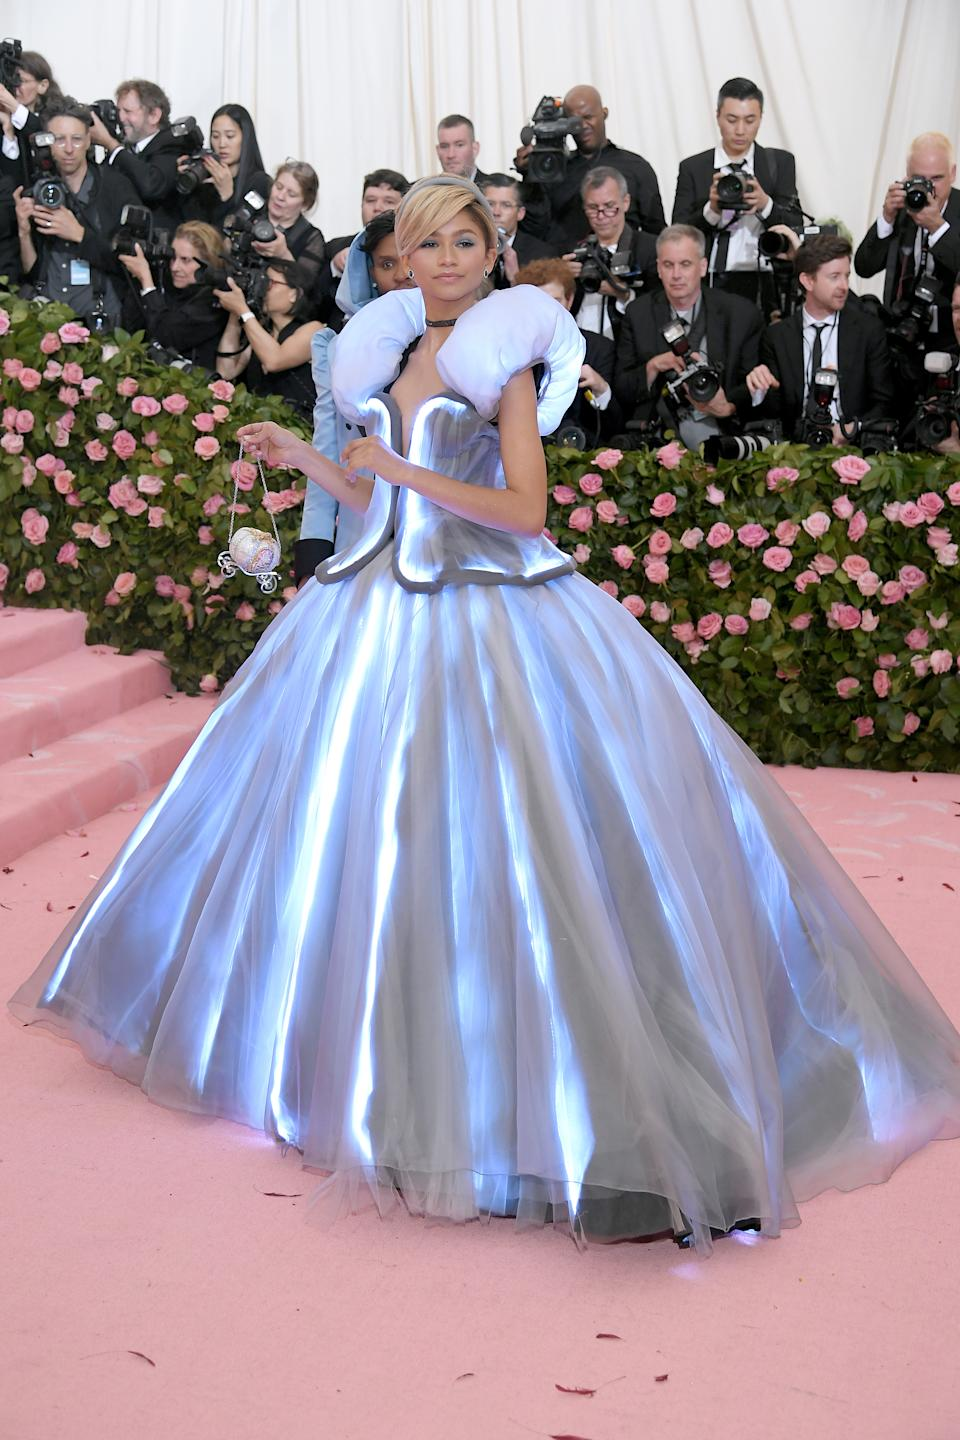 Zendaya truly lit up the night in an electric blue, Cinderella-themed gown which was quite literally electrified by LED lights throughout. Photo: Getty Images